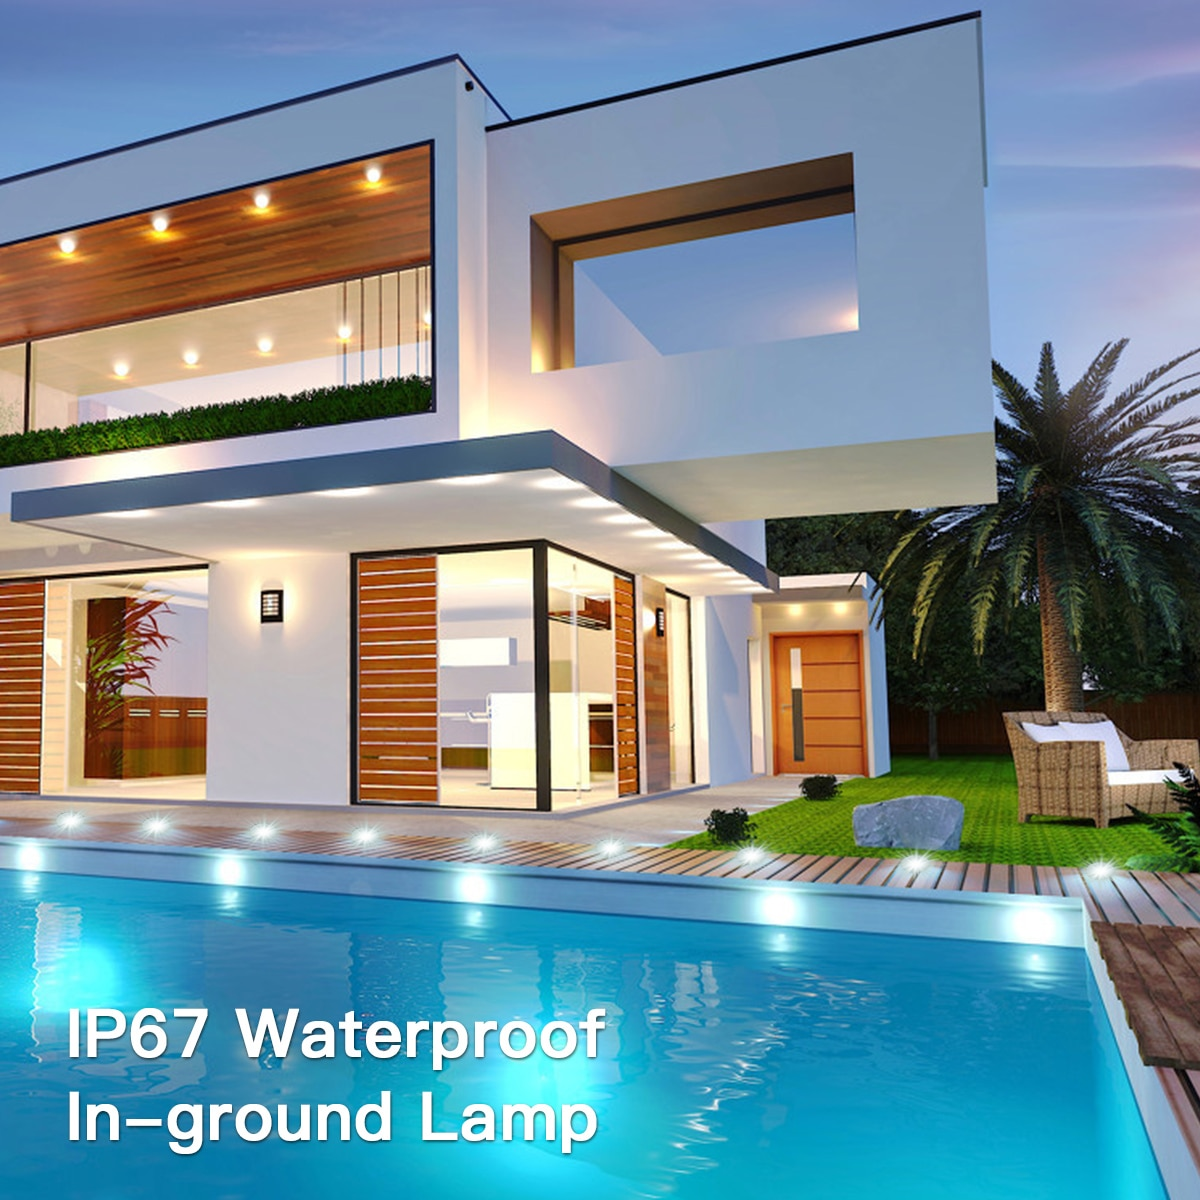 IP67 Waterproof  DC12V Recessed LEDs Deck Lights Outdoor In-ground Lamp Landscape Light for Yard Garden Pathway Stairs Patio enlarge